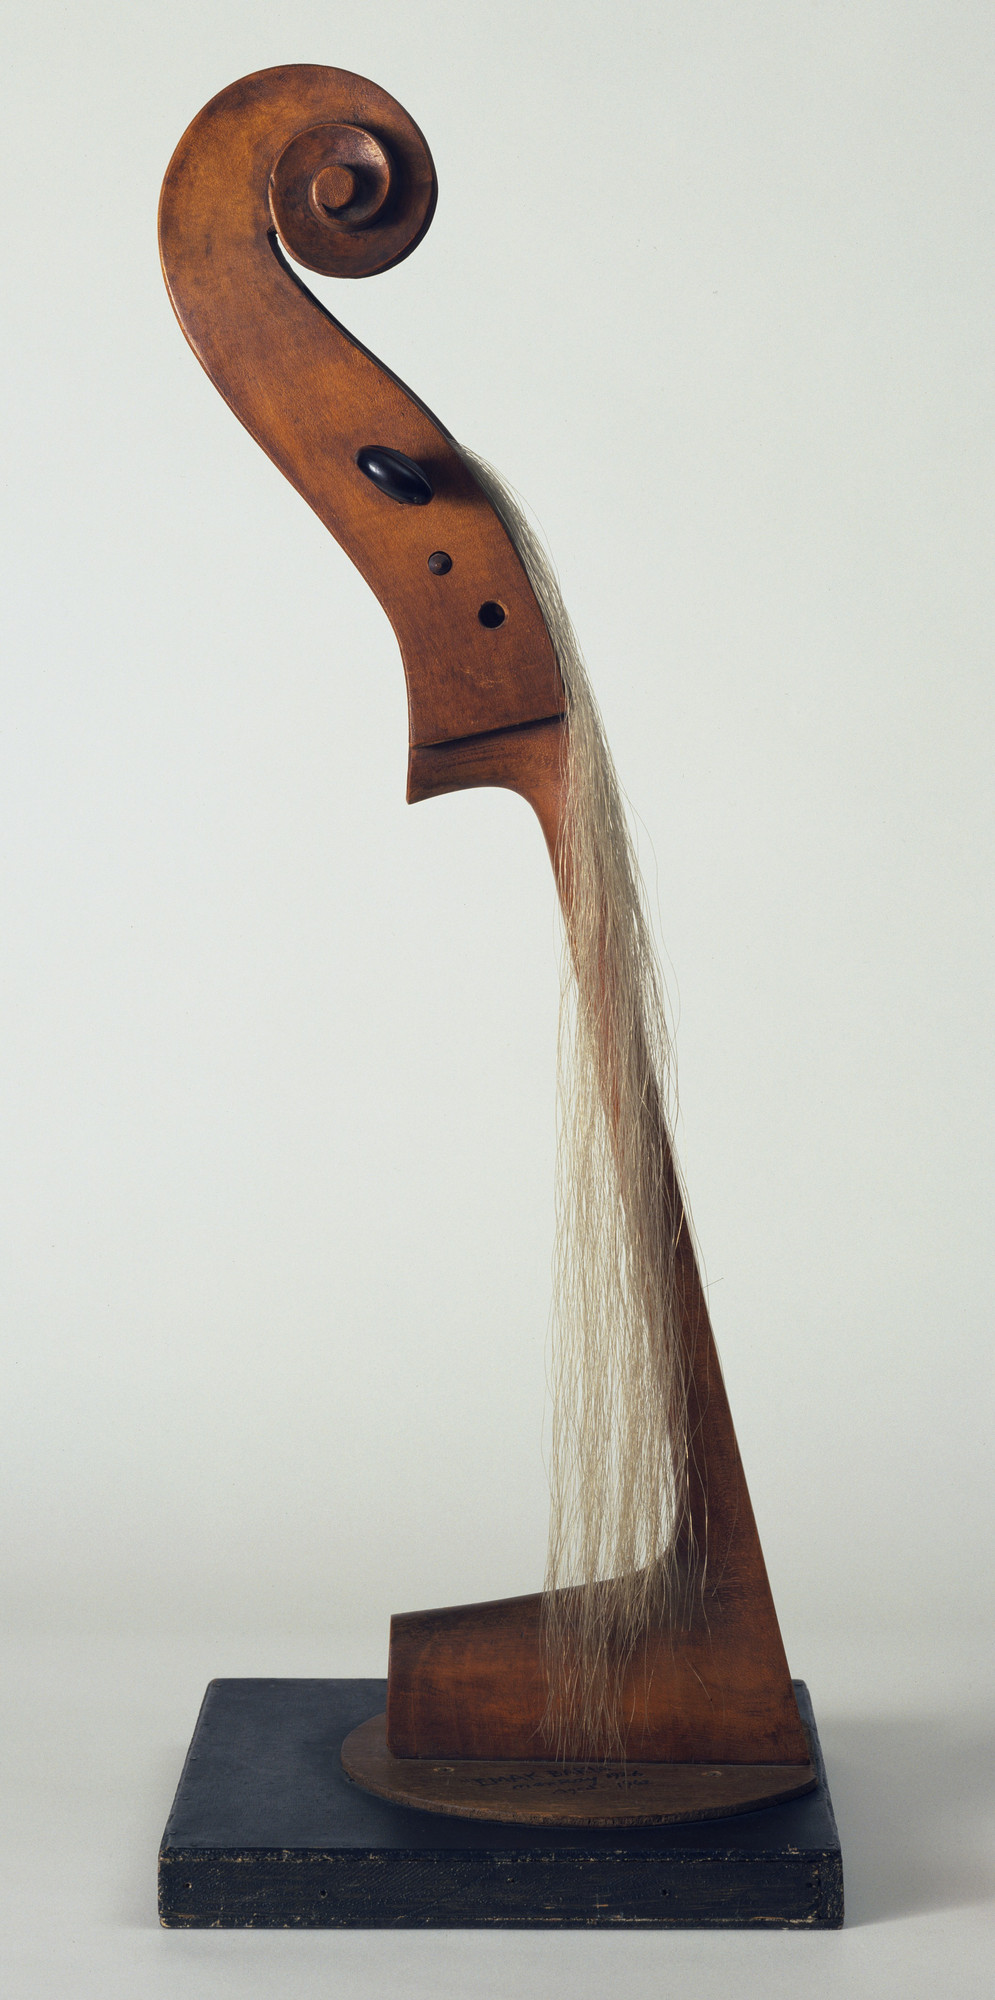 Man Ray (Emmanuel Radnitzky). Emak Bakia. 1962 (replica of 1926 original)